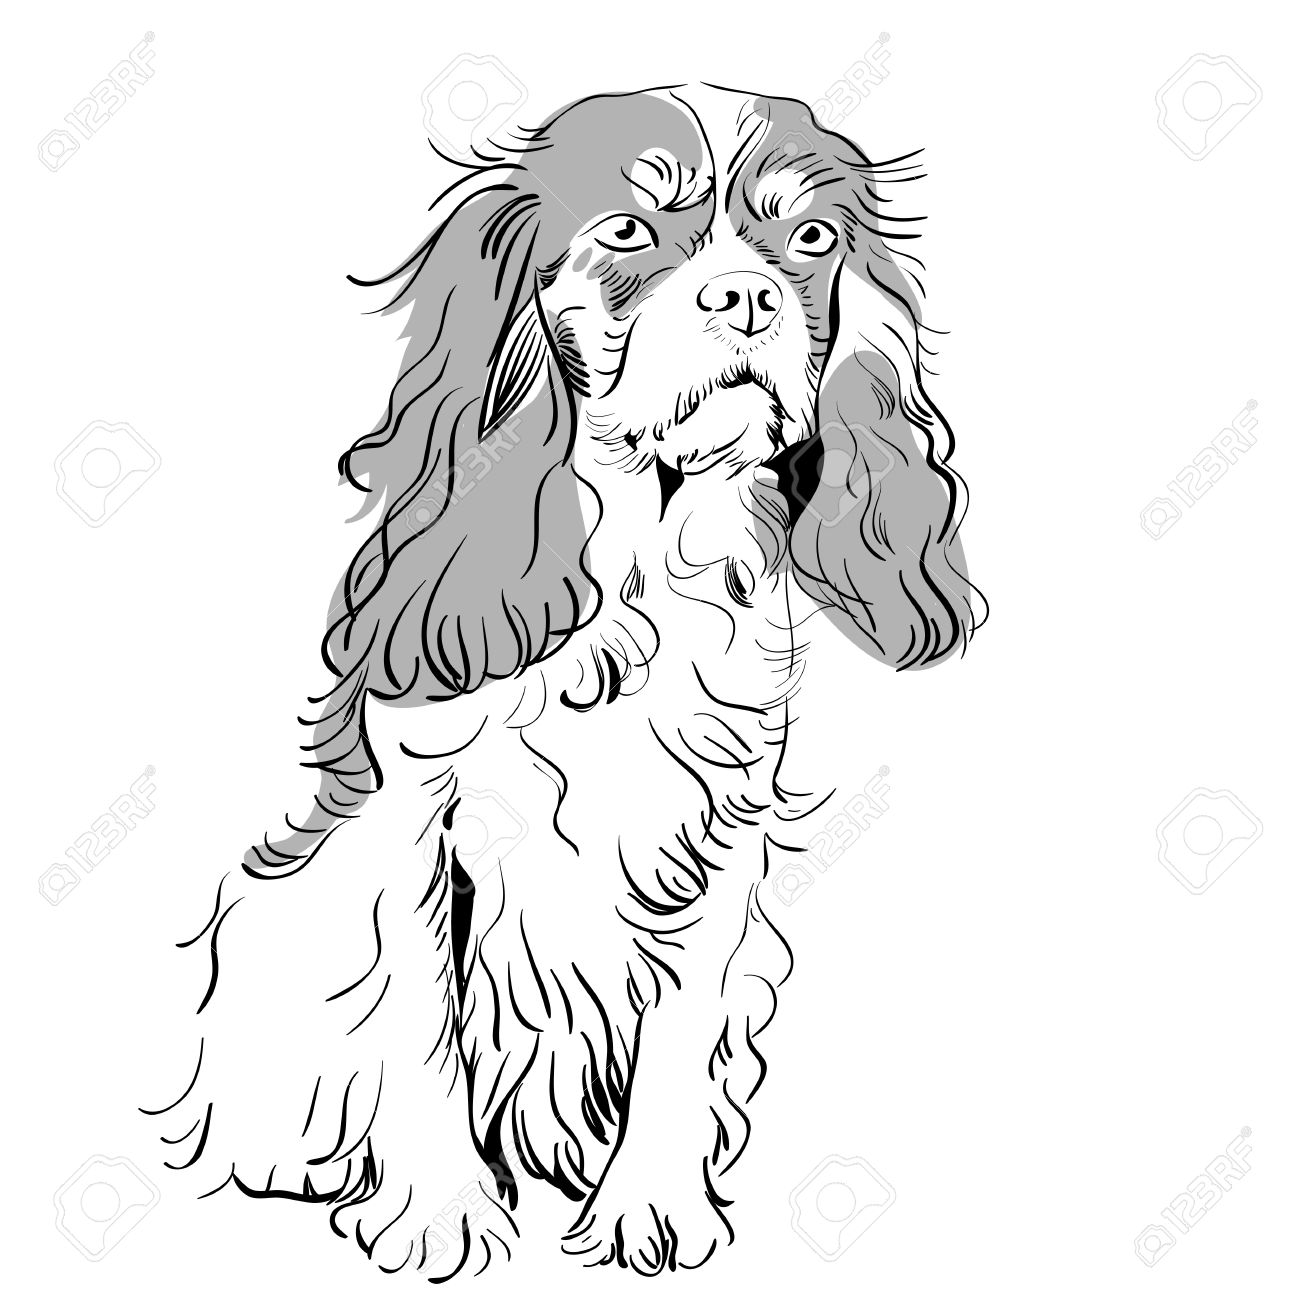 Image Of The Dog Breed Cavalier King Charles Spaniel Stock Vector